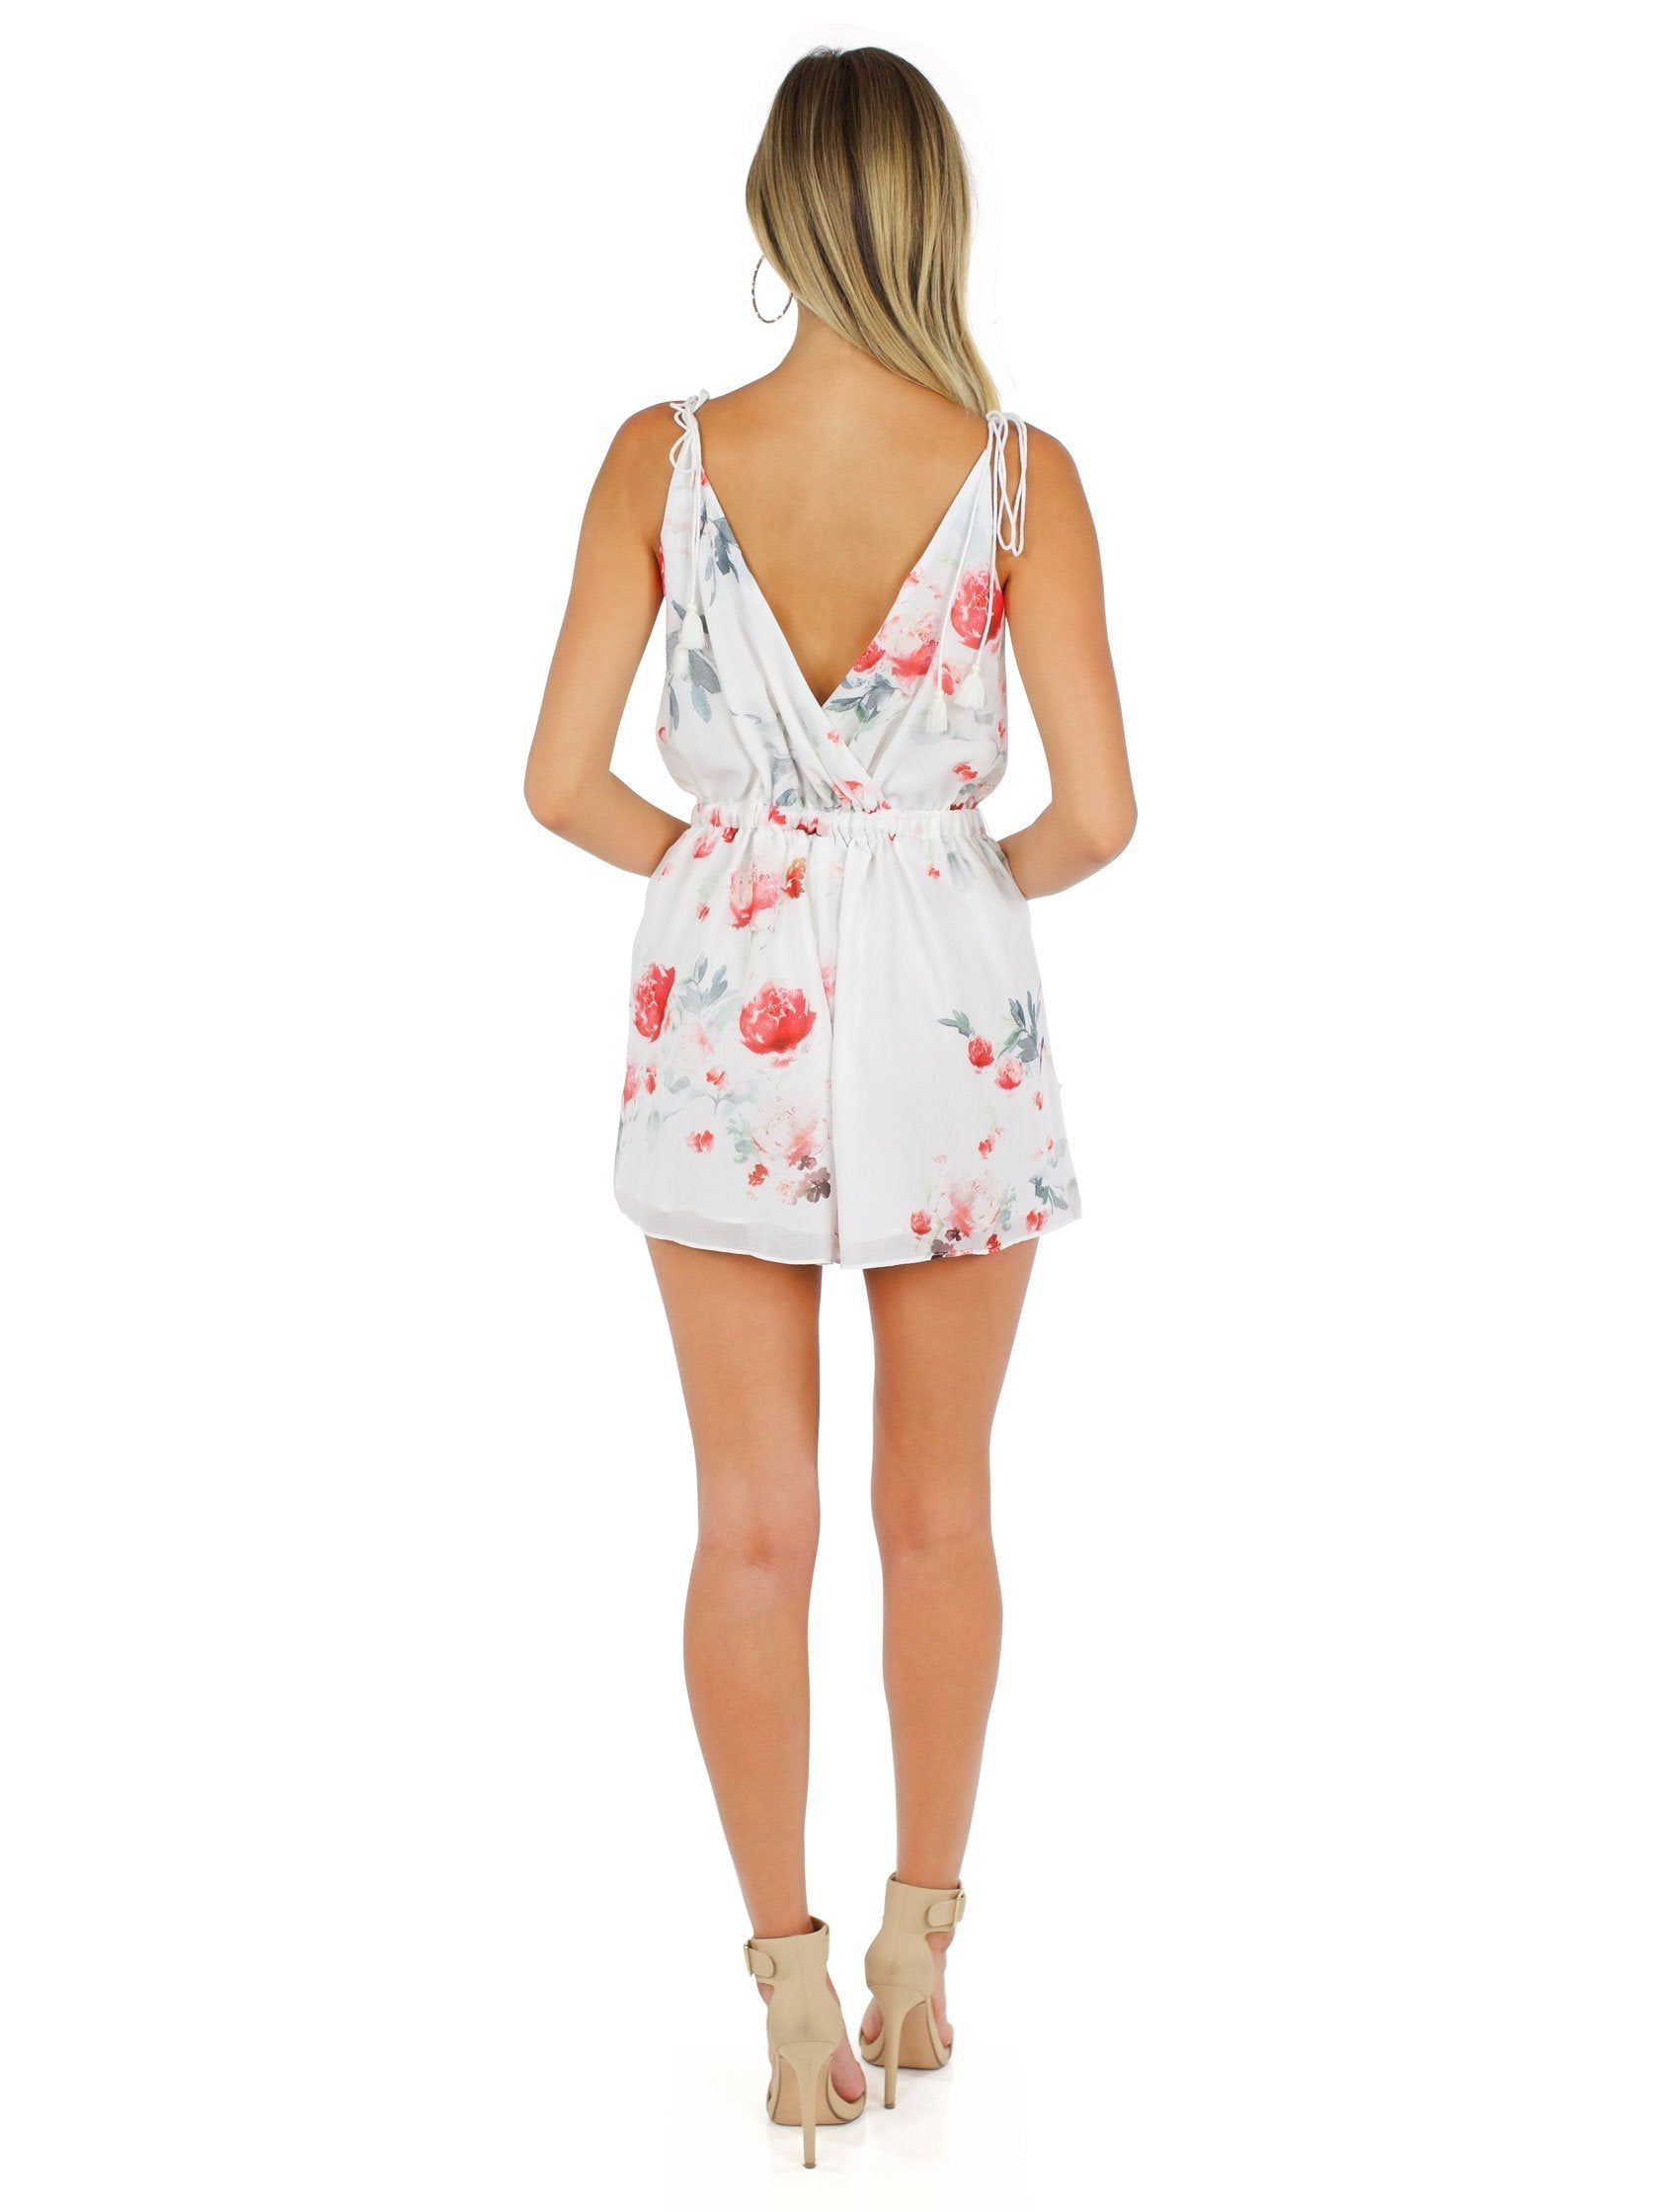 Women wearing a romper rental from The Jetset Diaries called Isabella Romper